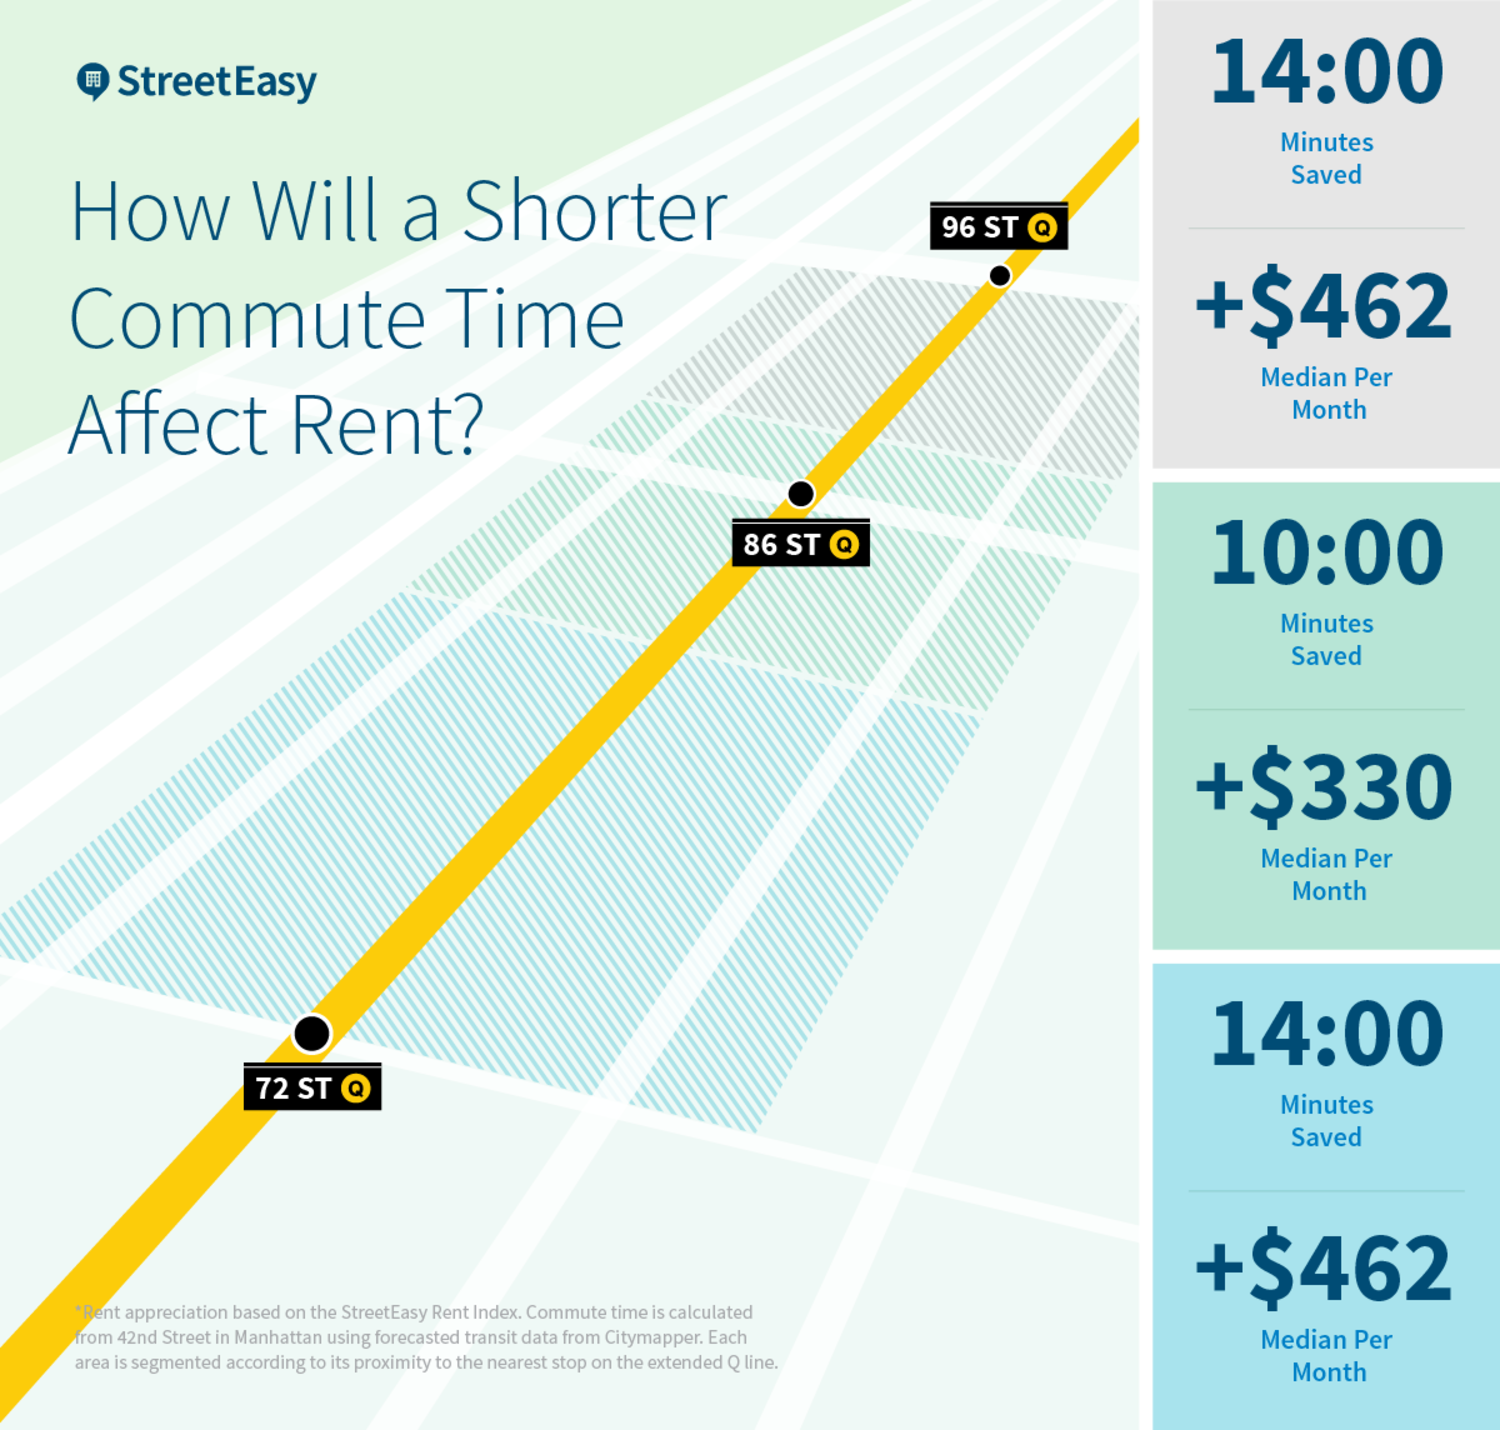 How Will a Shorter Commute Time Affect Rent?